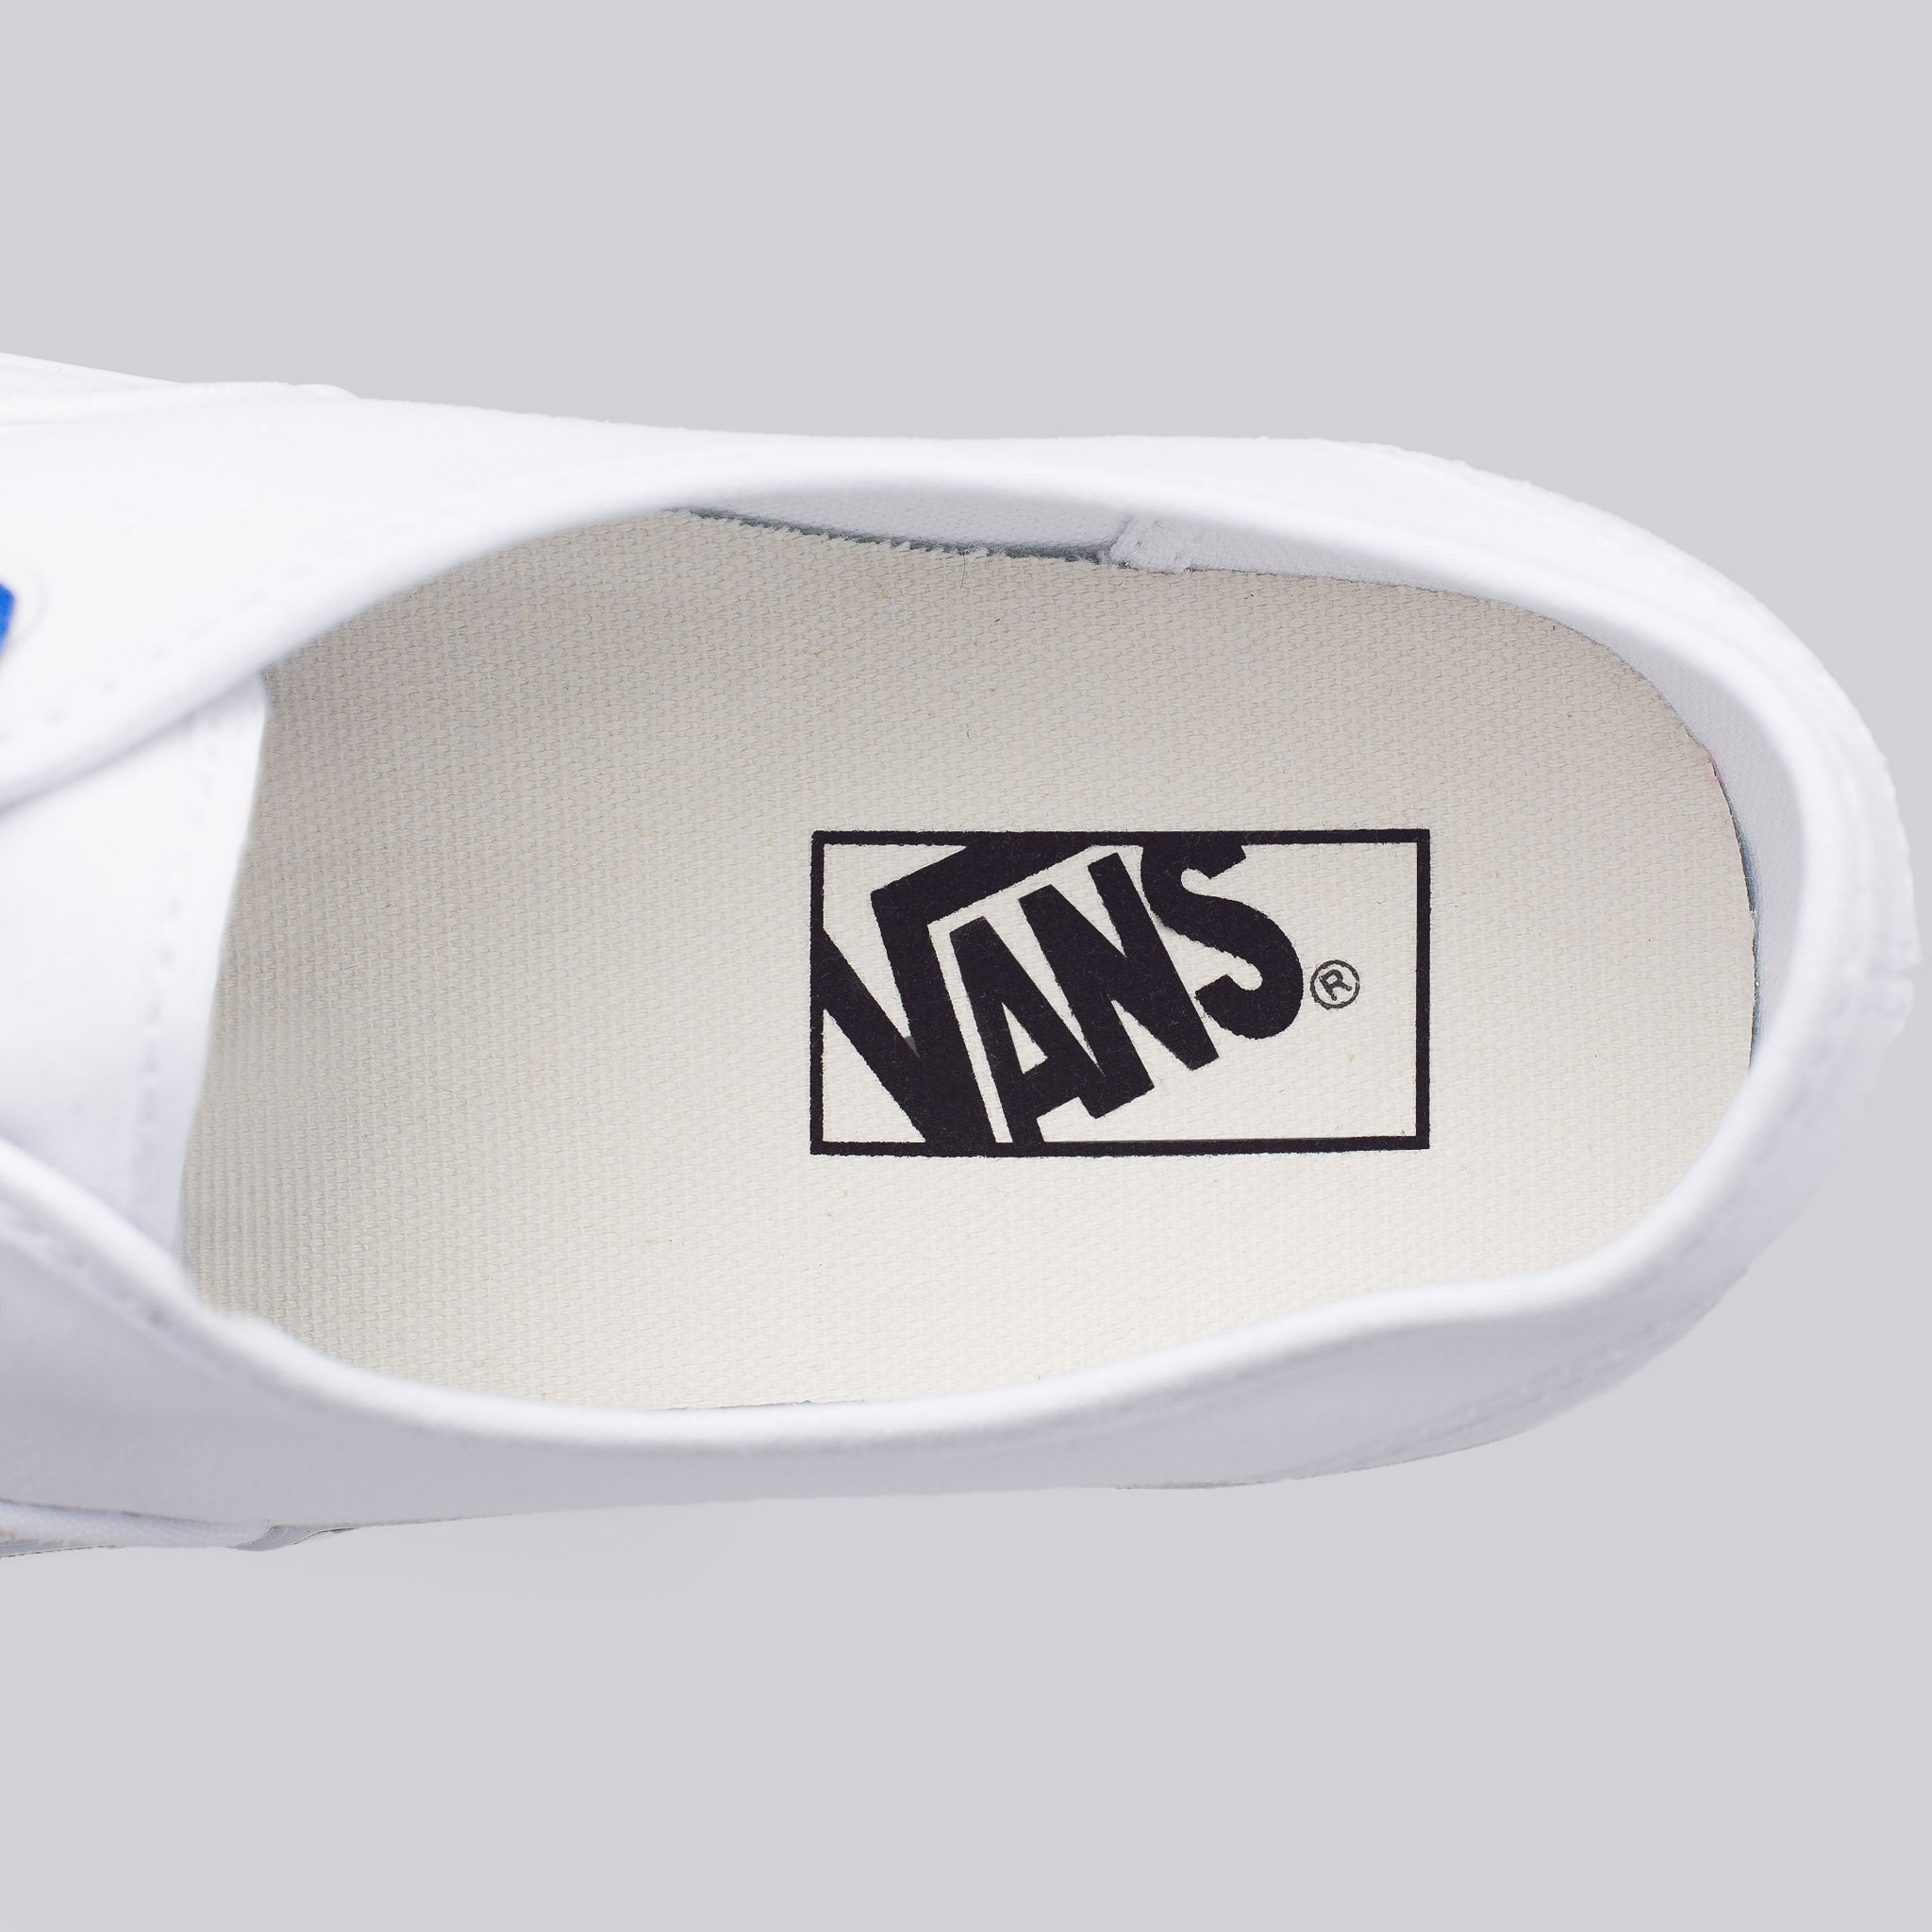 Authentic Sketch Sidewall in True White